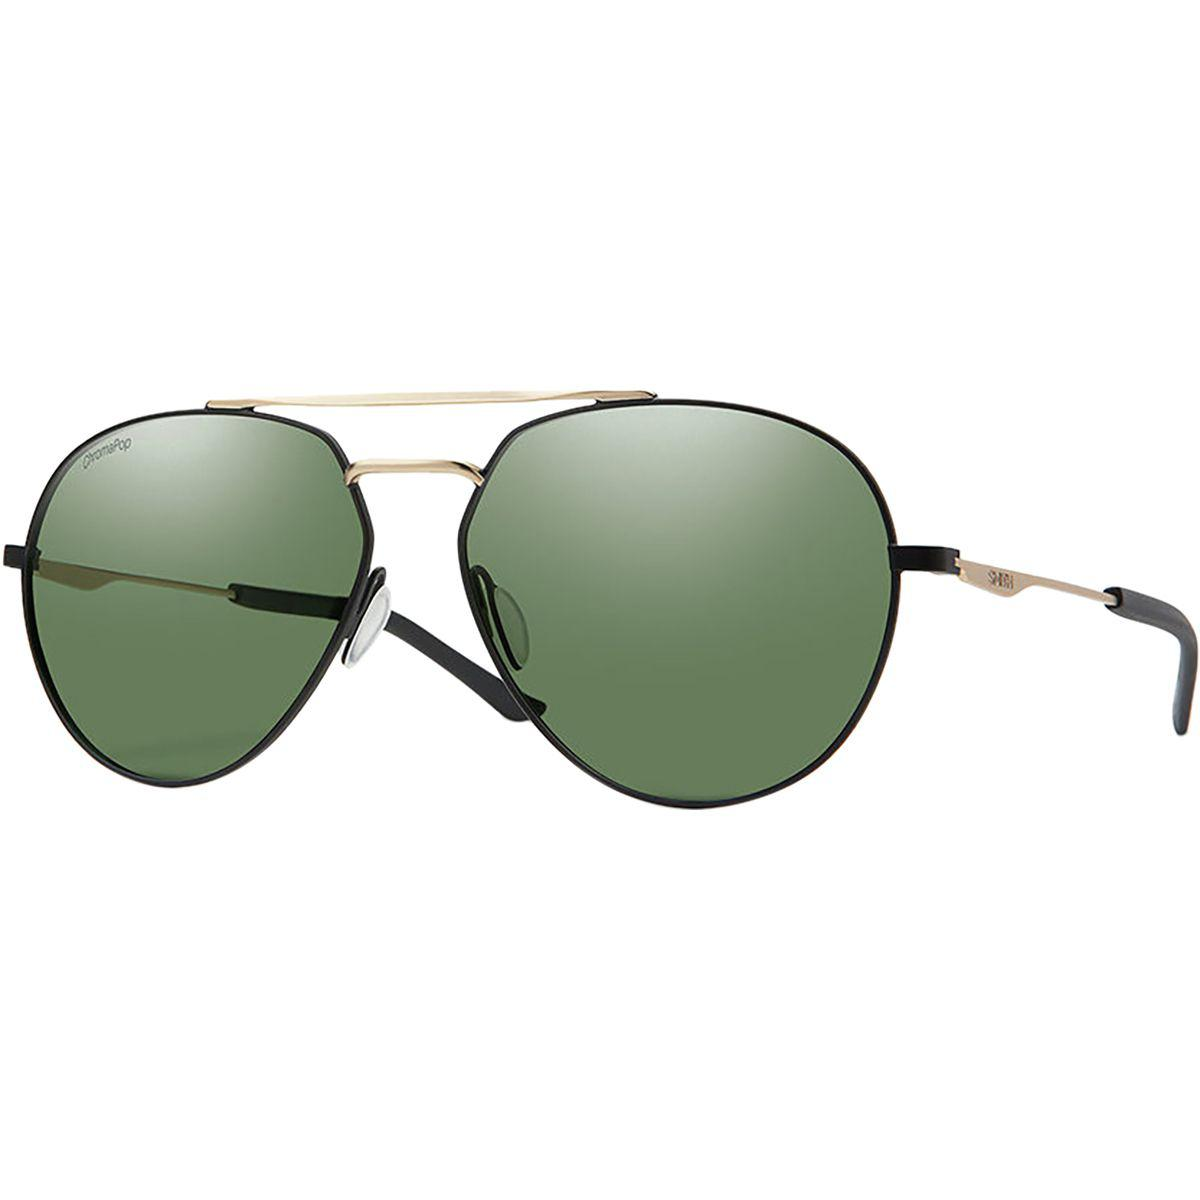 621bc307c31 Lyst - Smith Westgate Chromapop Polarized Sunglasses in Green for Men